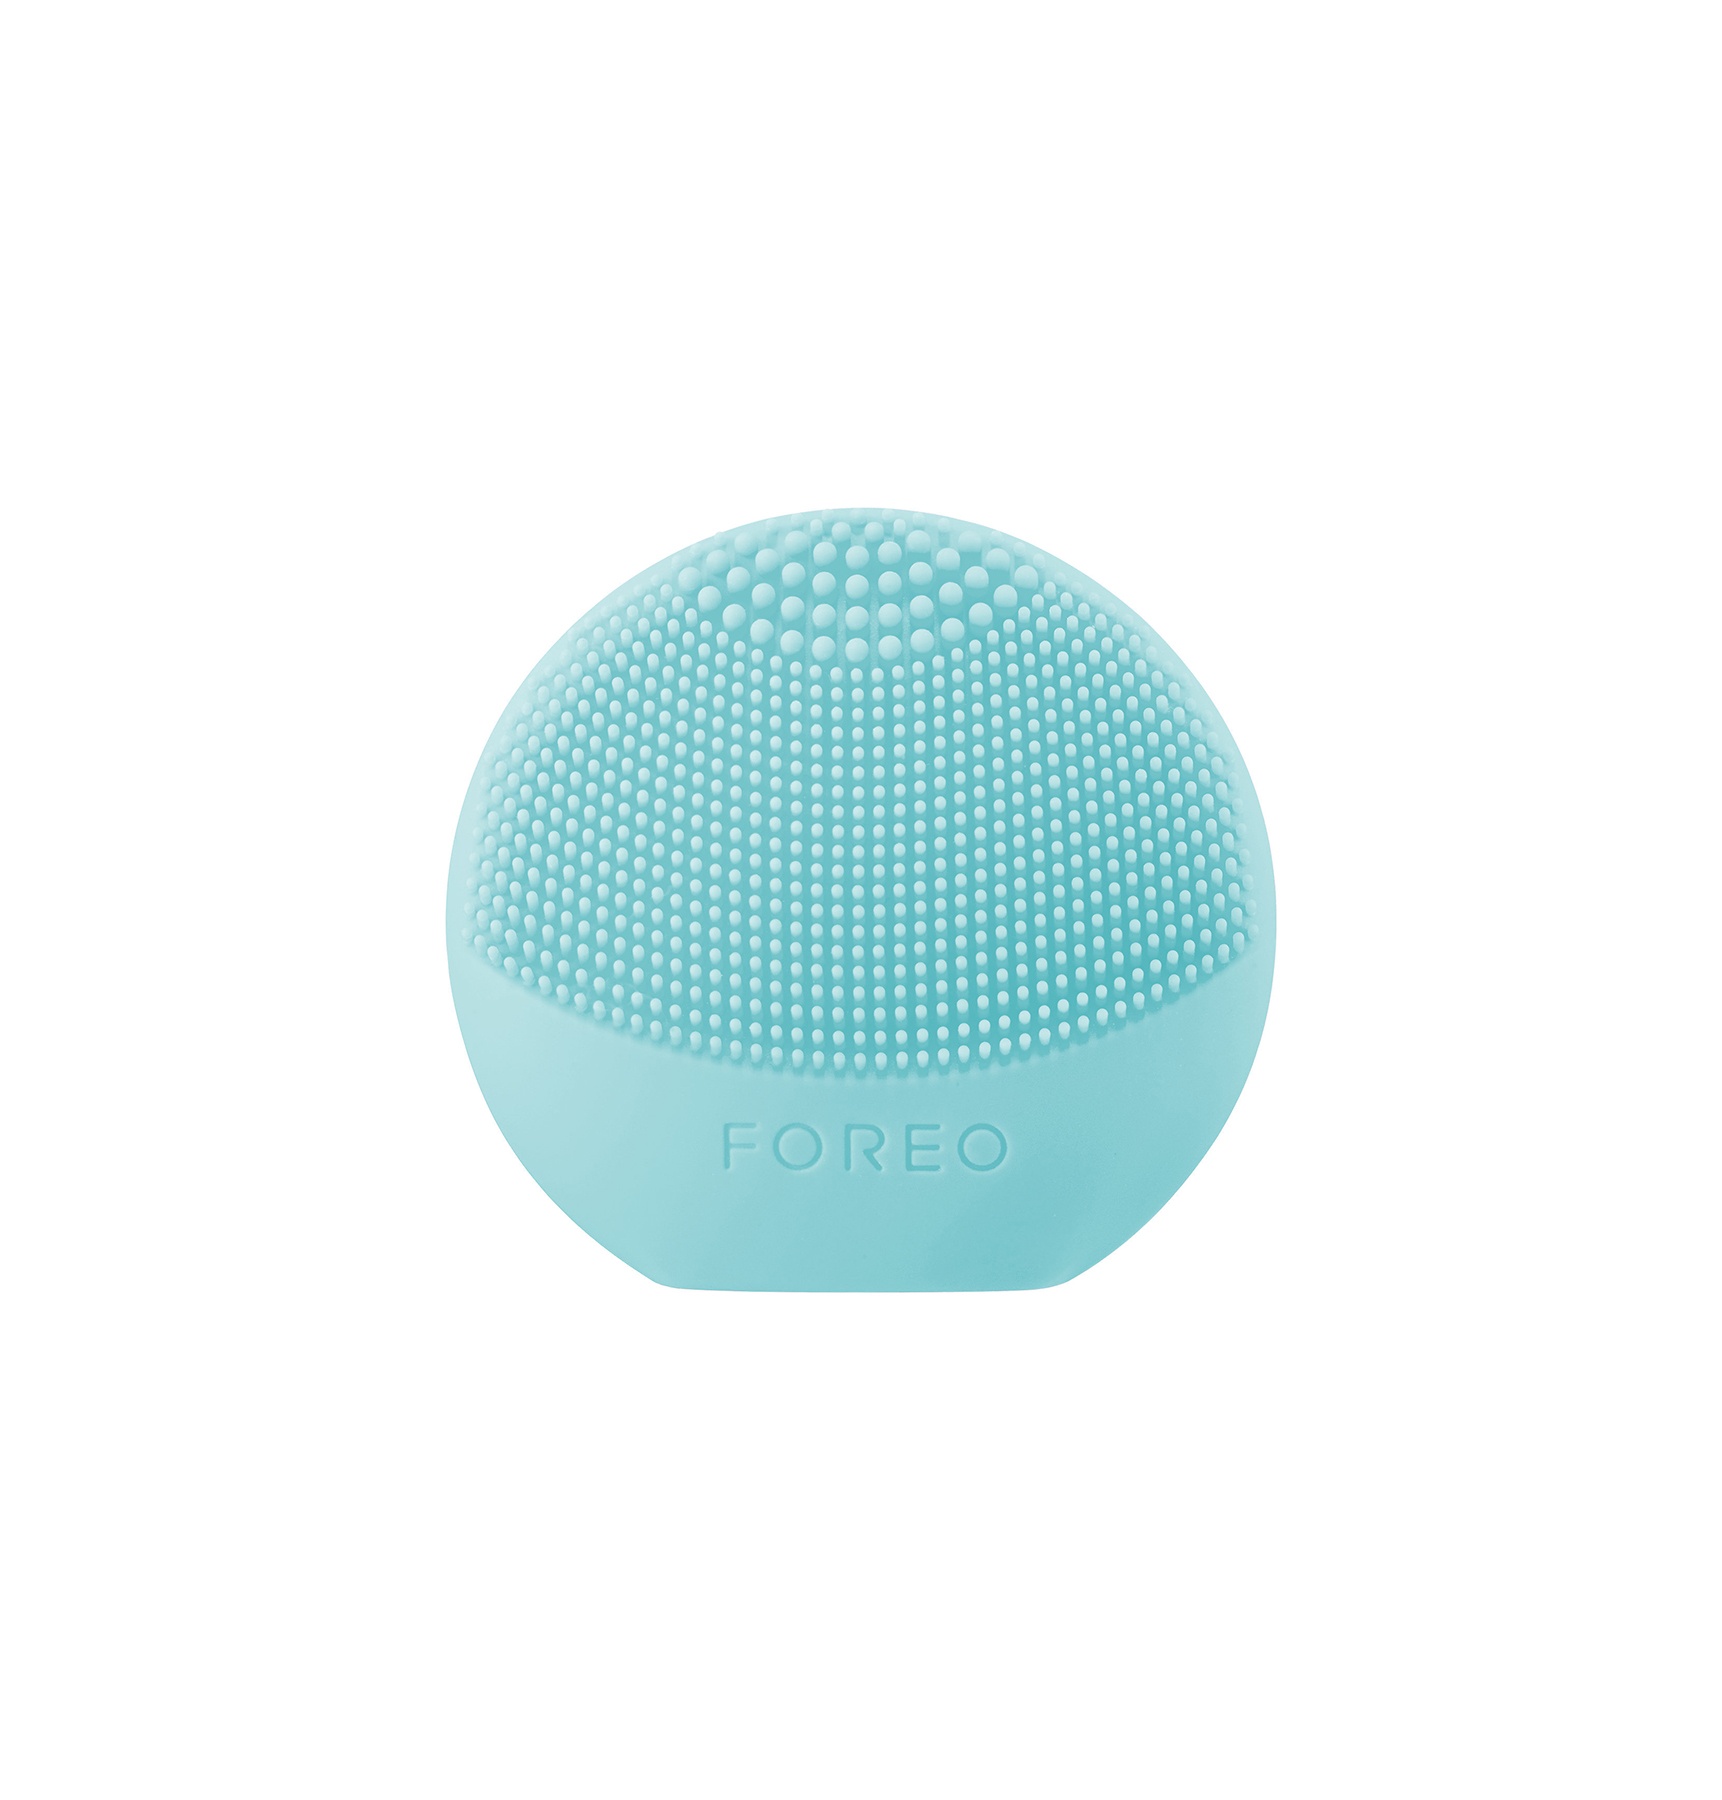 Luna Play for Foreo Cleansing Brushes